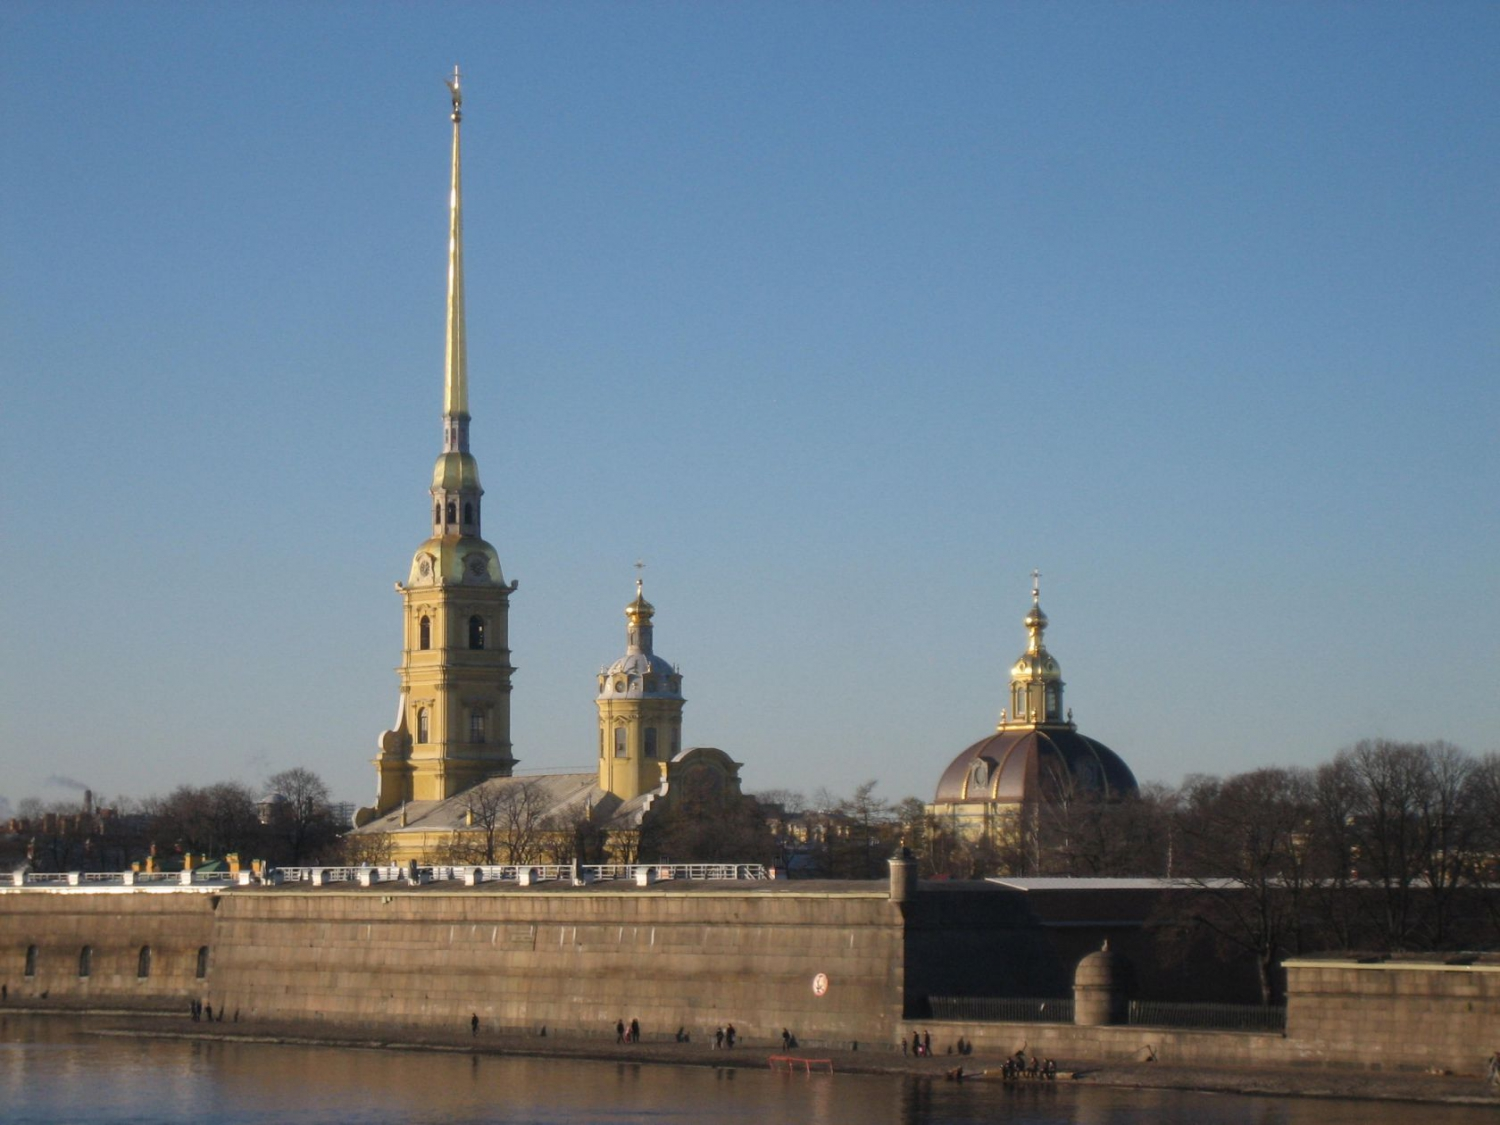 St Peter and Paul Fortress